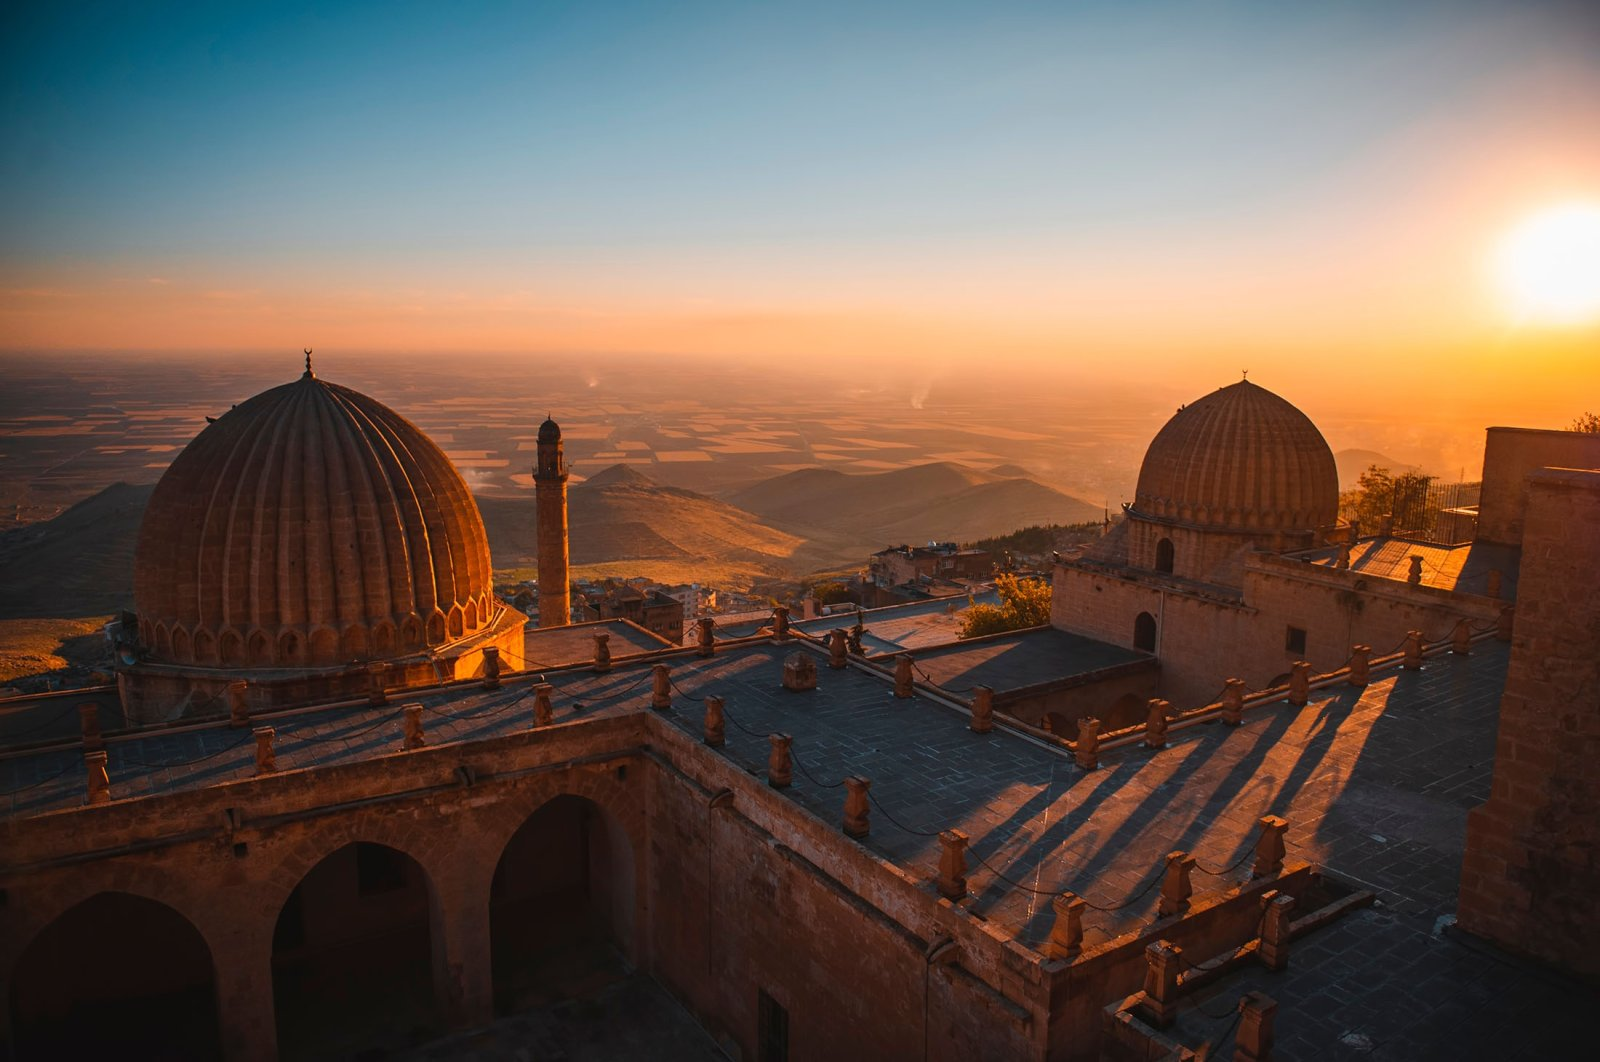 Mardin landscape at sunset with the minaret of Ulu Cami, also known as the Great Mosque of Mardin. (Shutterstock Photo)